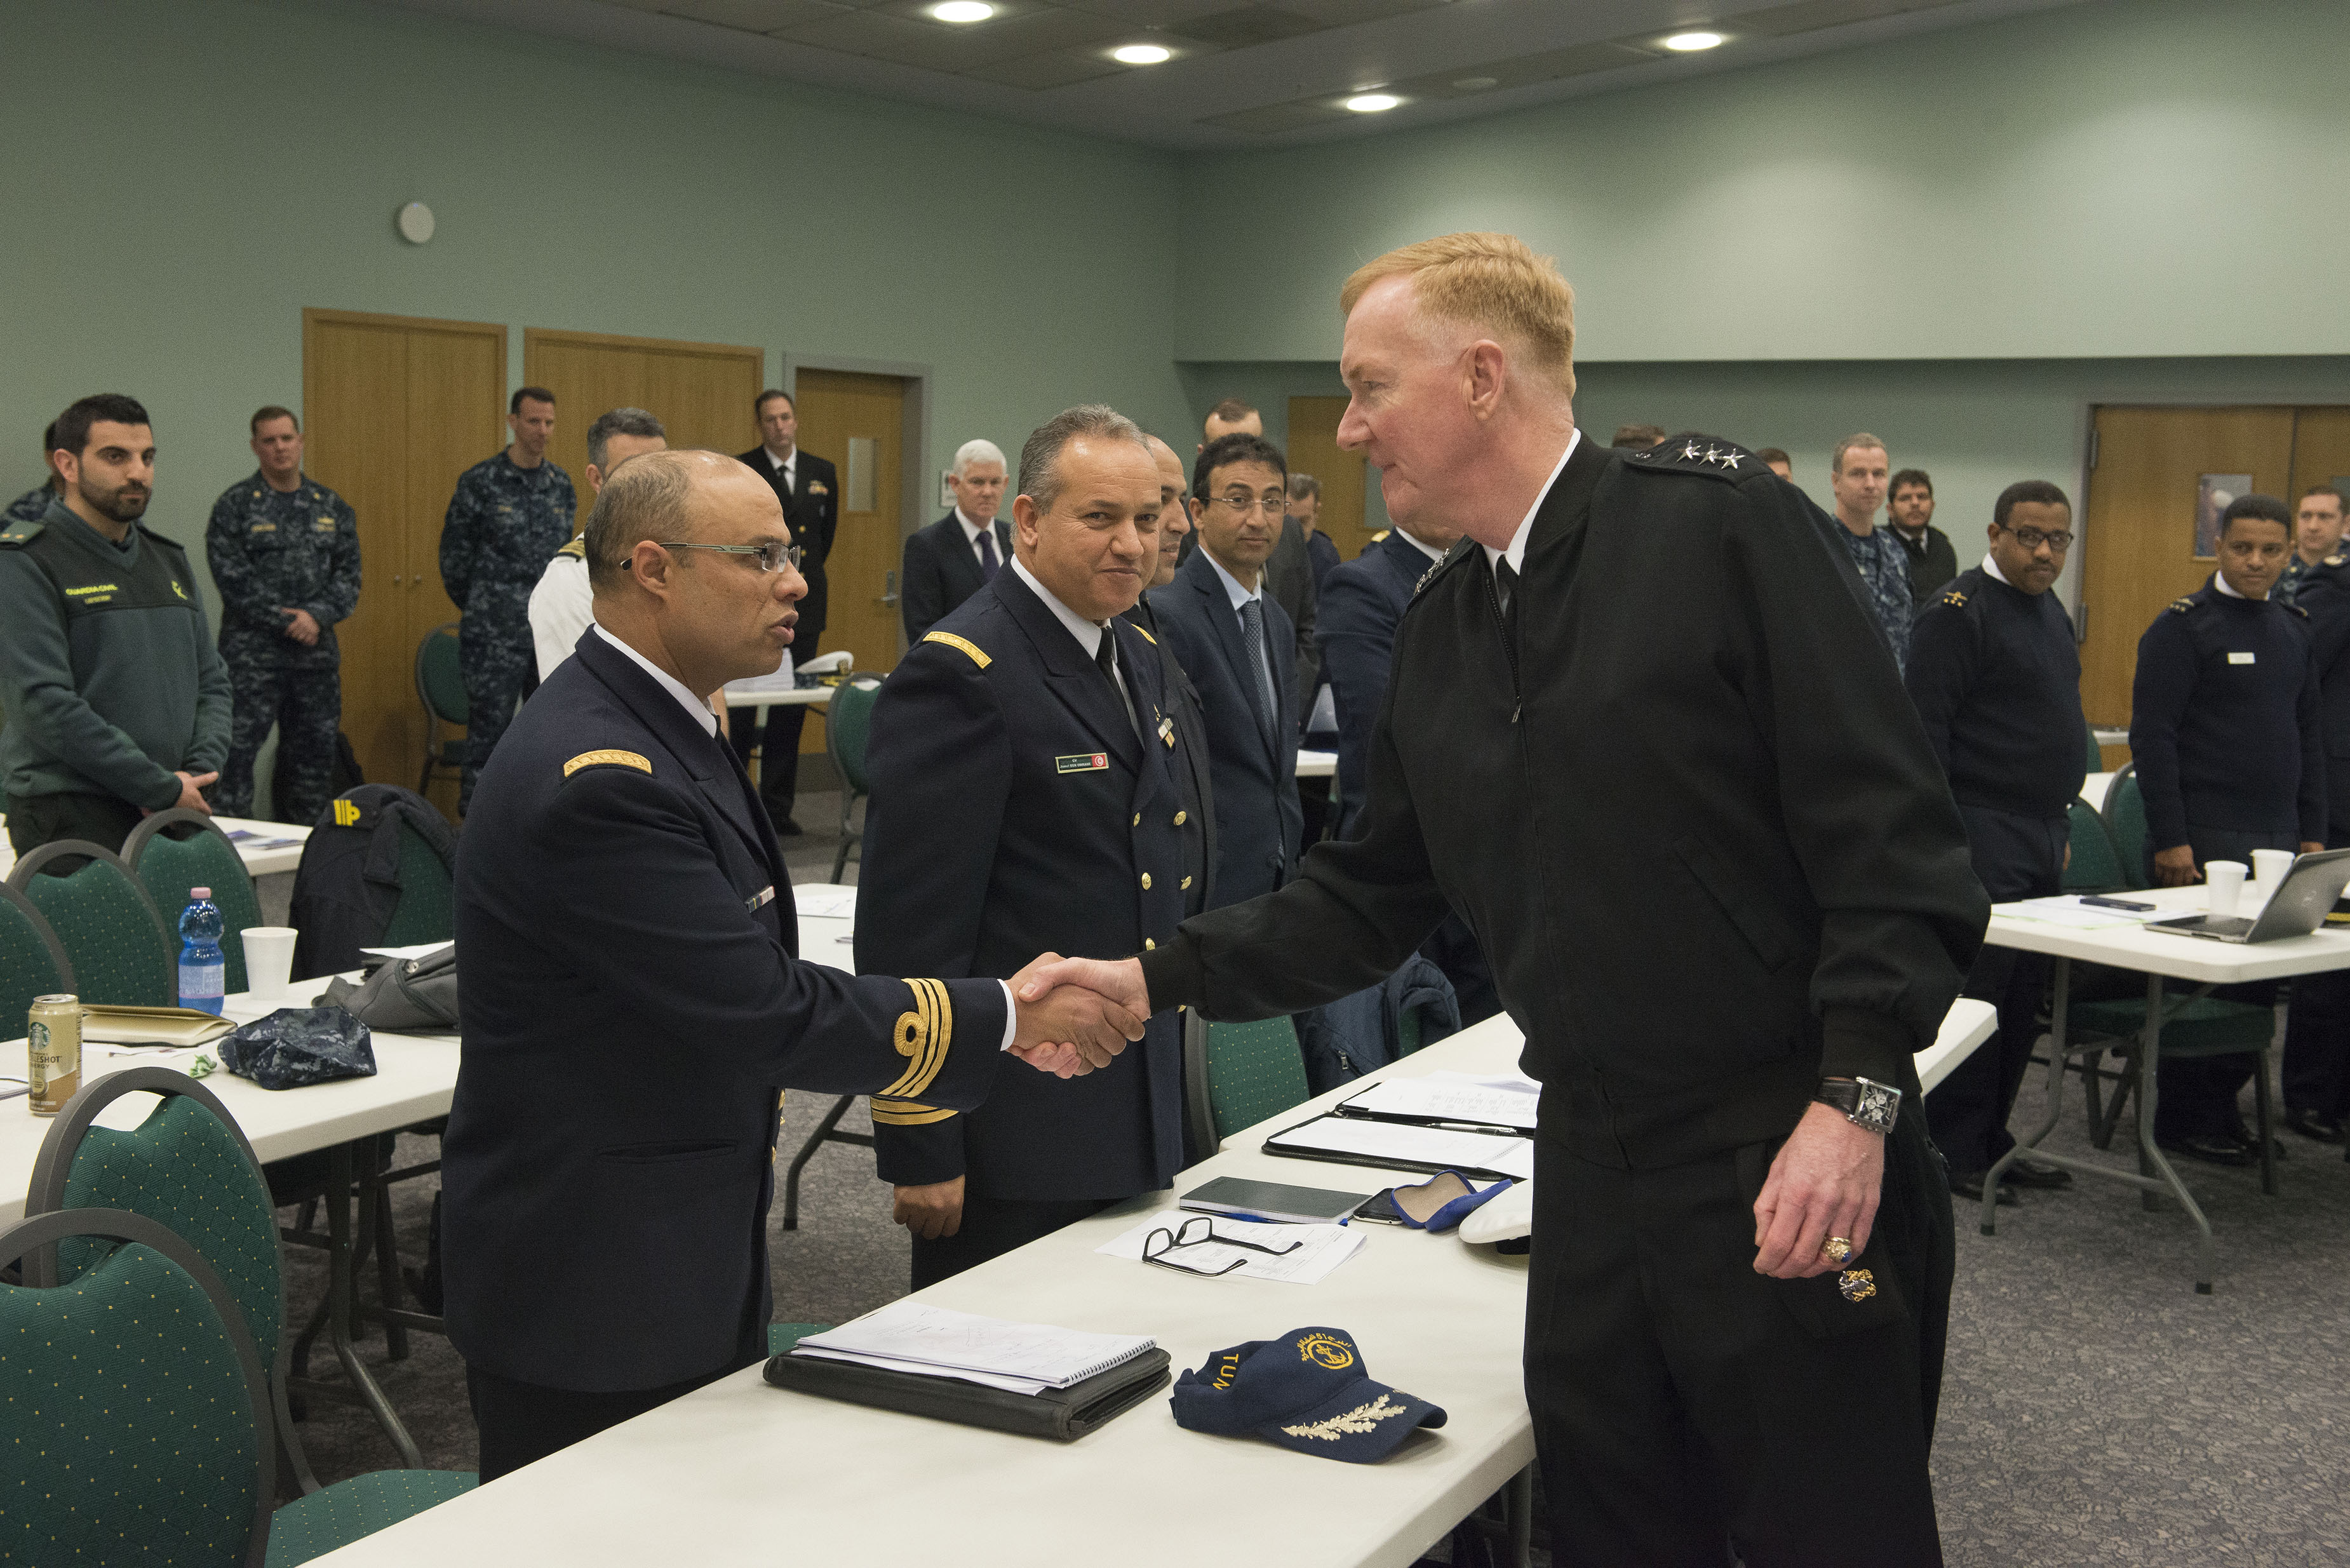 160307-N-OX801-025 NAVAL SUPPORT ACTIVITY NAPLES, Italy (March 7, 2016) Commander, U.S. 6th Fleet, Vice Adm. James Foggo III, right, welcomes attending senior leaders from maritime forces at the Phoenix Express 2016 planning conference at Naval Support Activity Naples, Italy, March 7, 2016. U.S. 6th Fleet, headquartered in Naples, Italy, conducts the full spectrum of joint and naval operations, often in concert with allied, joint, and interagency partner, in order to advance U.S. national interests and security and stability in Europe and Africa. (U.S. Navy photo by Mass Communication Specialist 2nd Class Daniel P. Schumacher/Released)